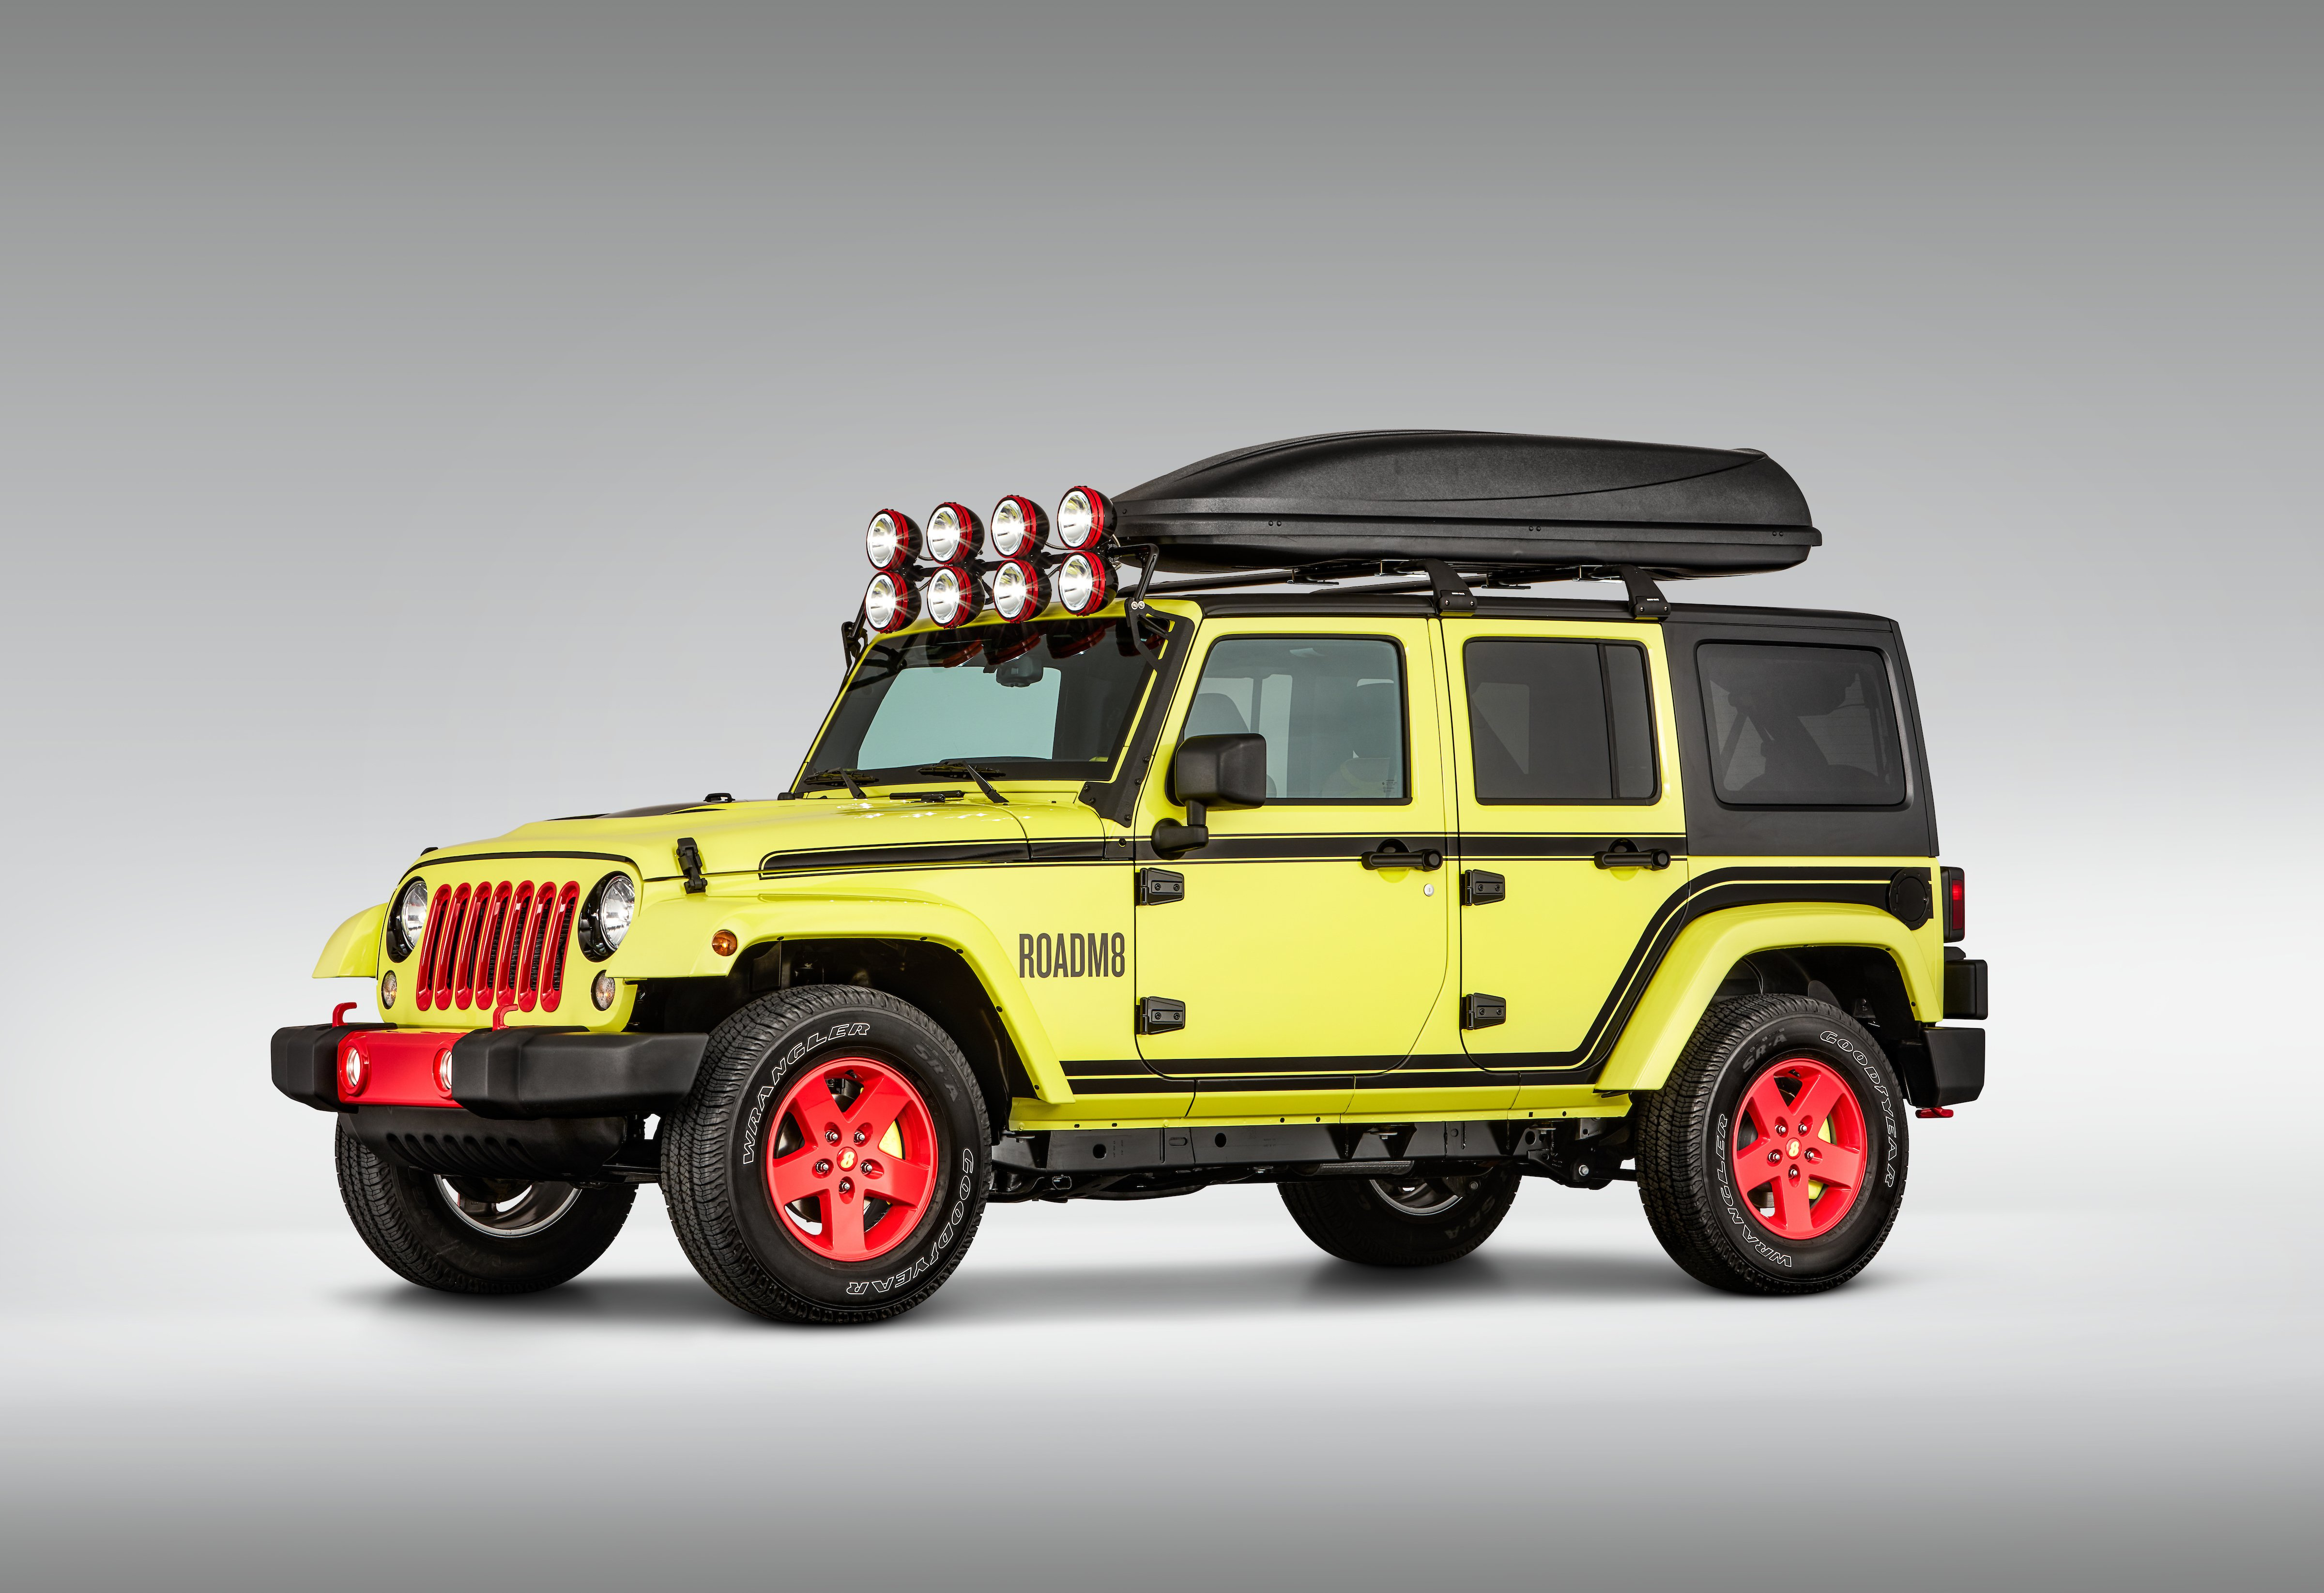 The base of ROADM8 was built from a 2017 Jeep Wrangler